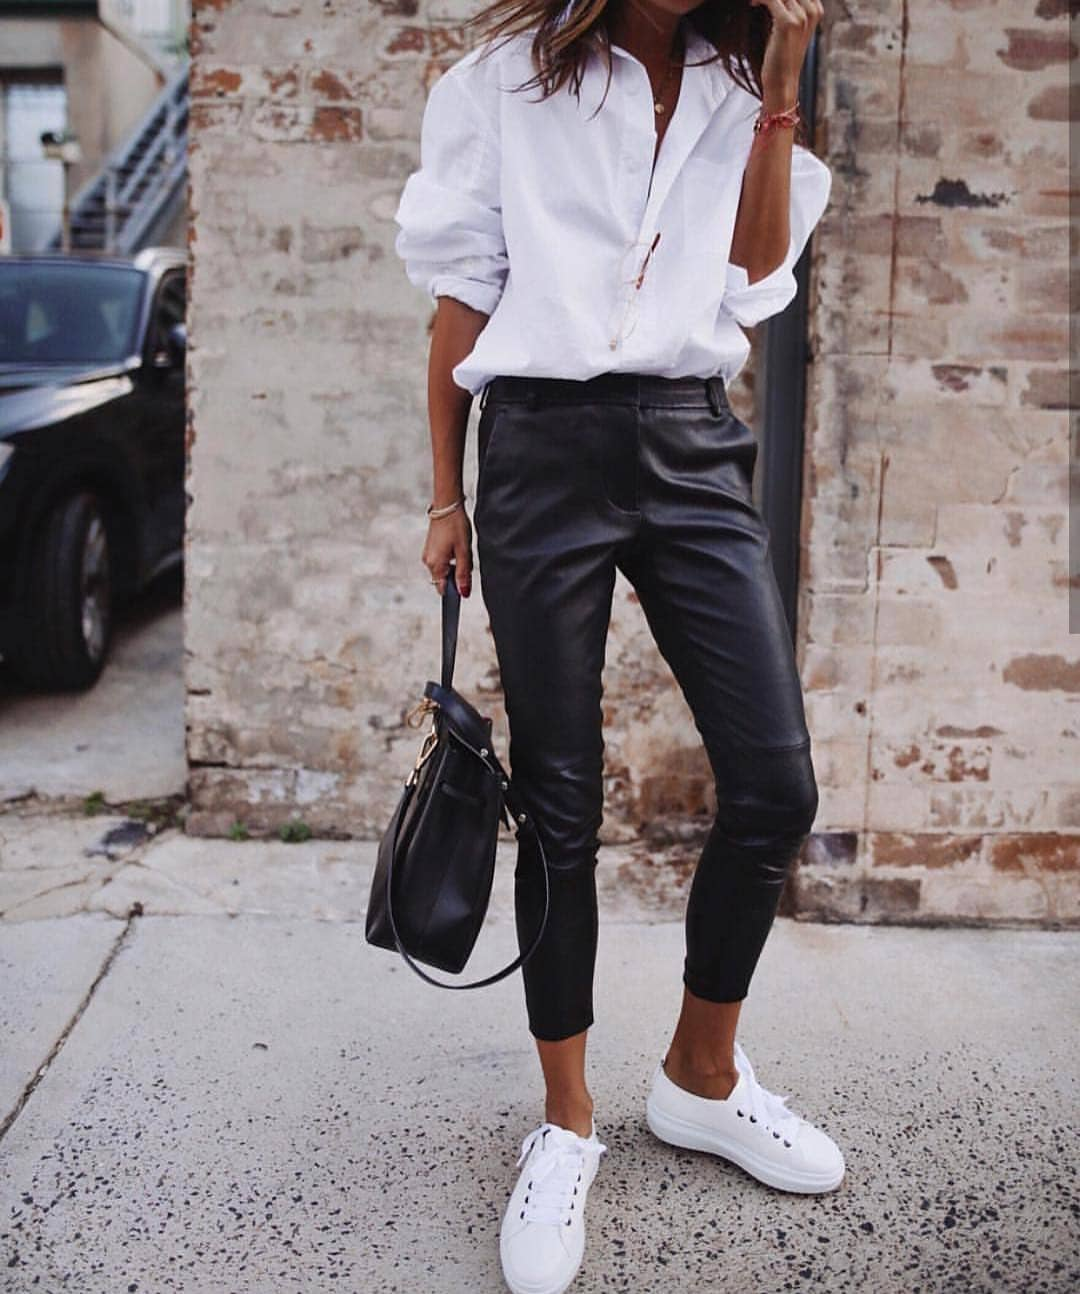 White Shirt And Black Leather Pants For September Wear 2019